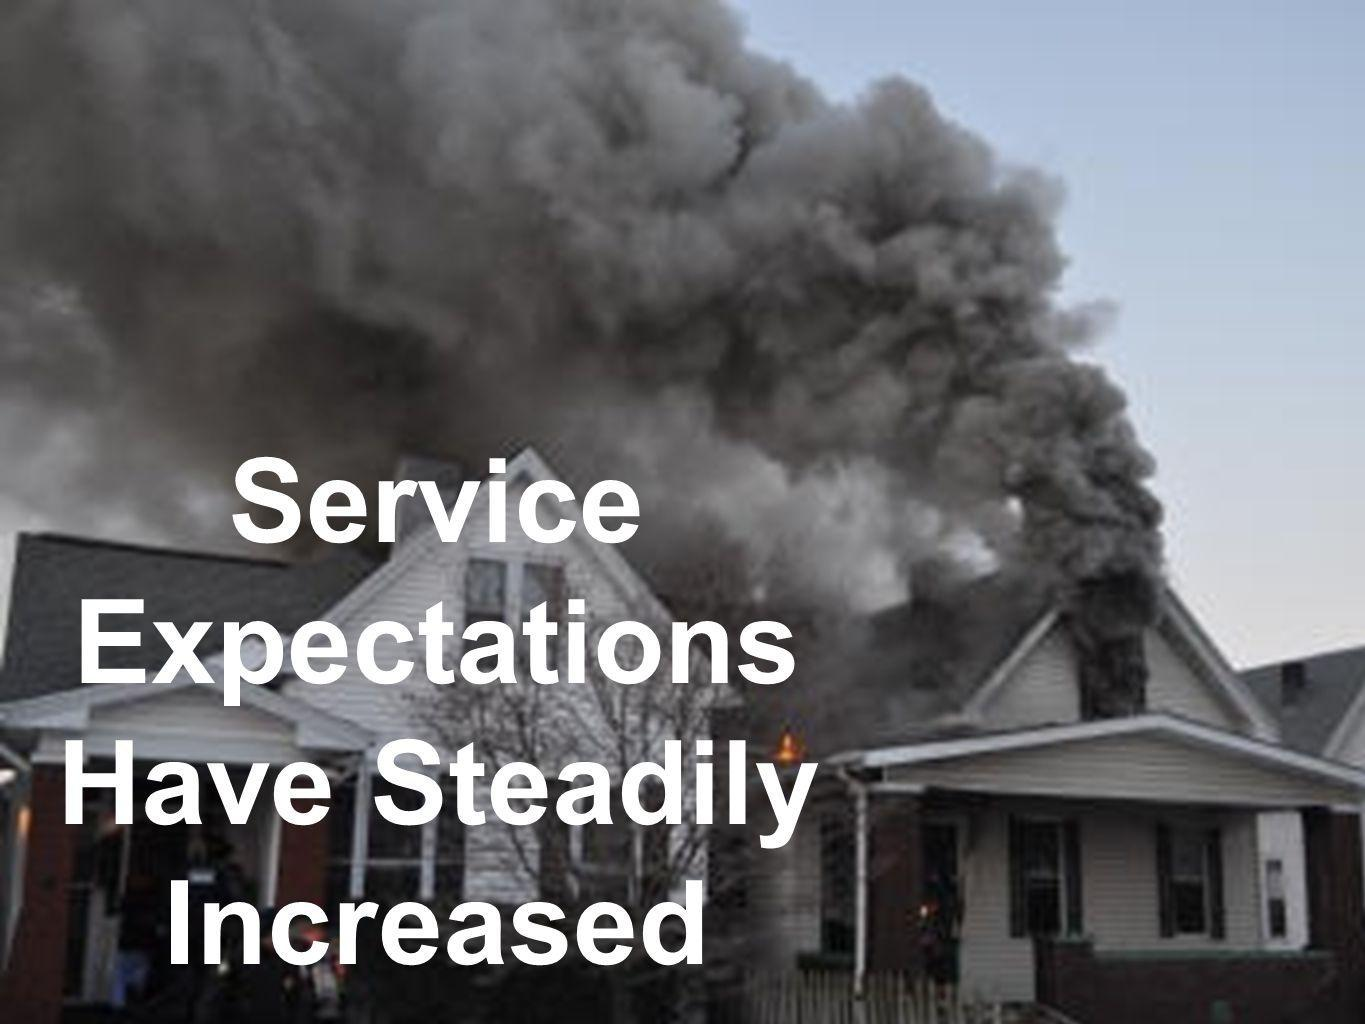 Service Expectations Have Steadily Increased